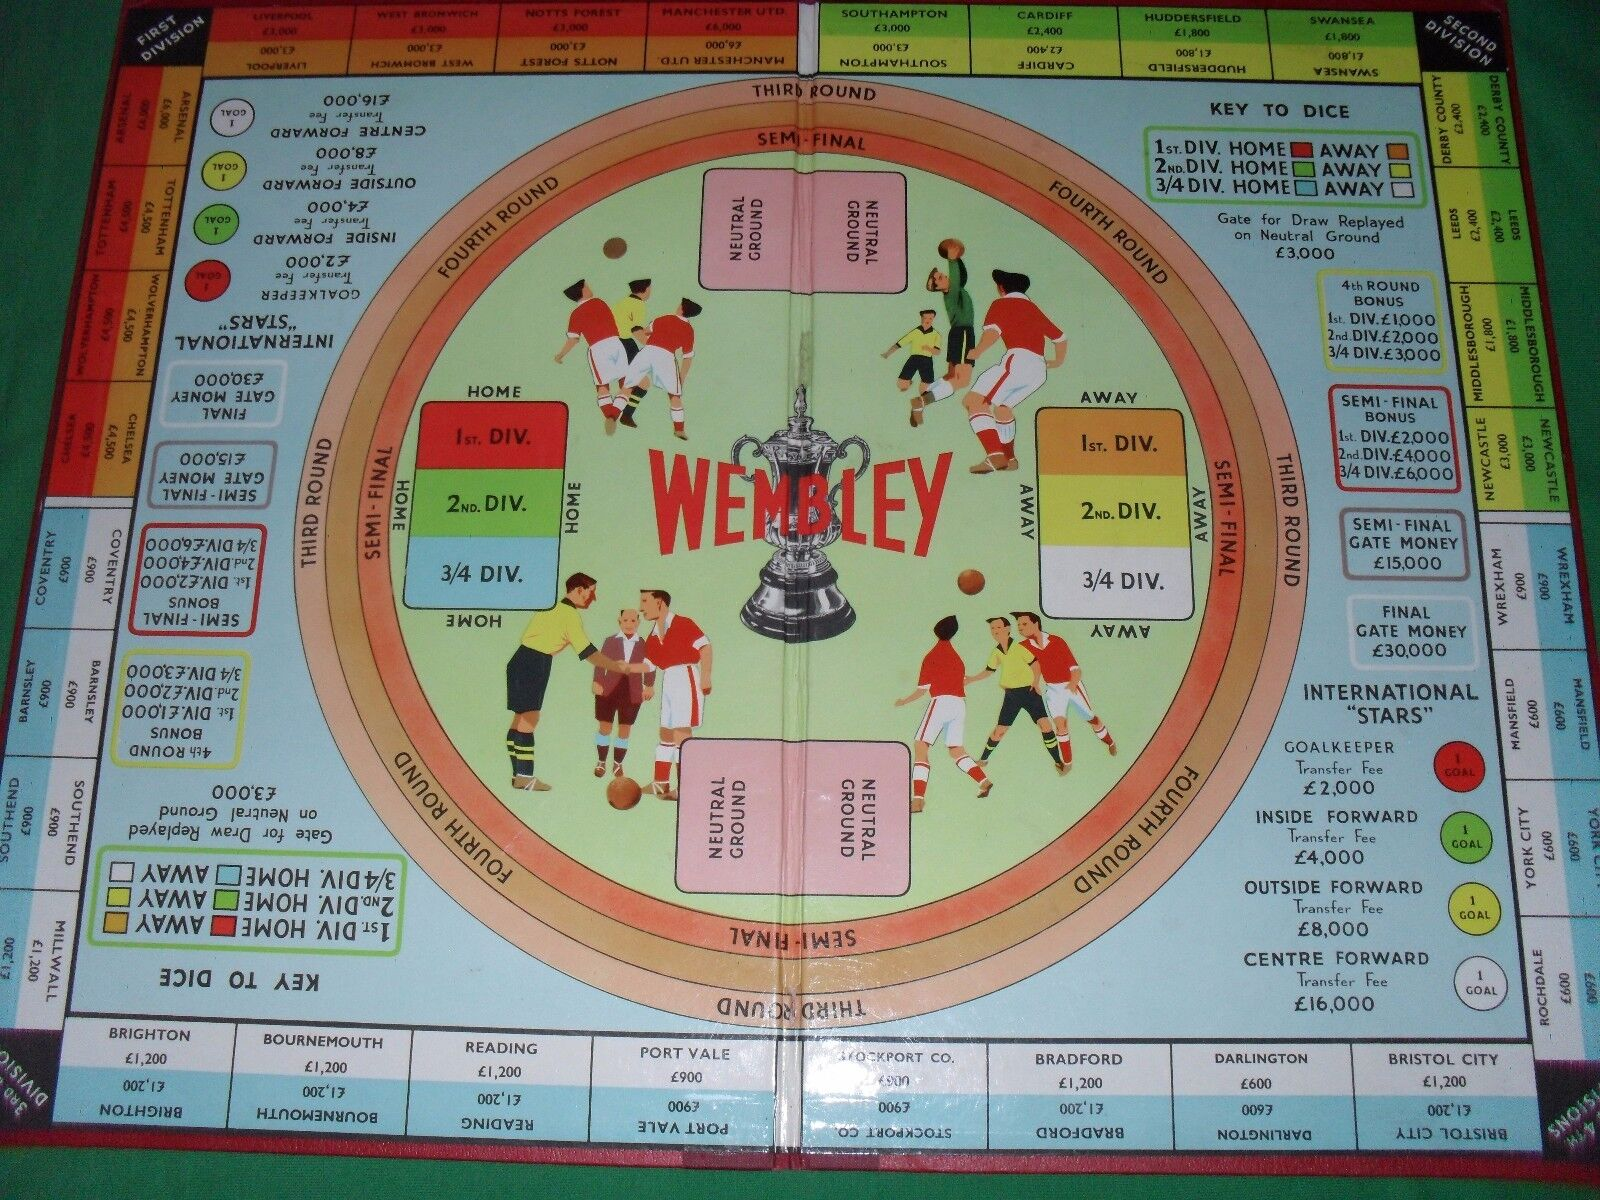 Wembley Wembley Wembley Football Cup Tie Vintage Ariel Board Game 1a4524